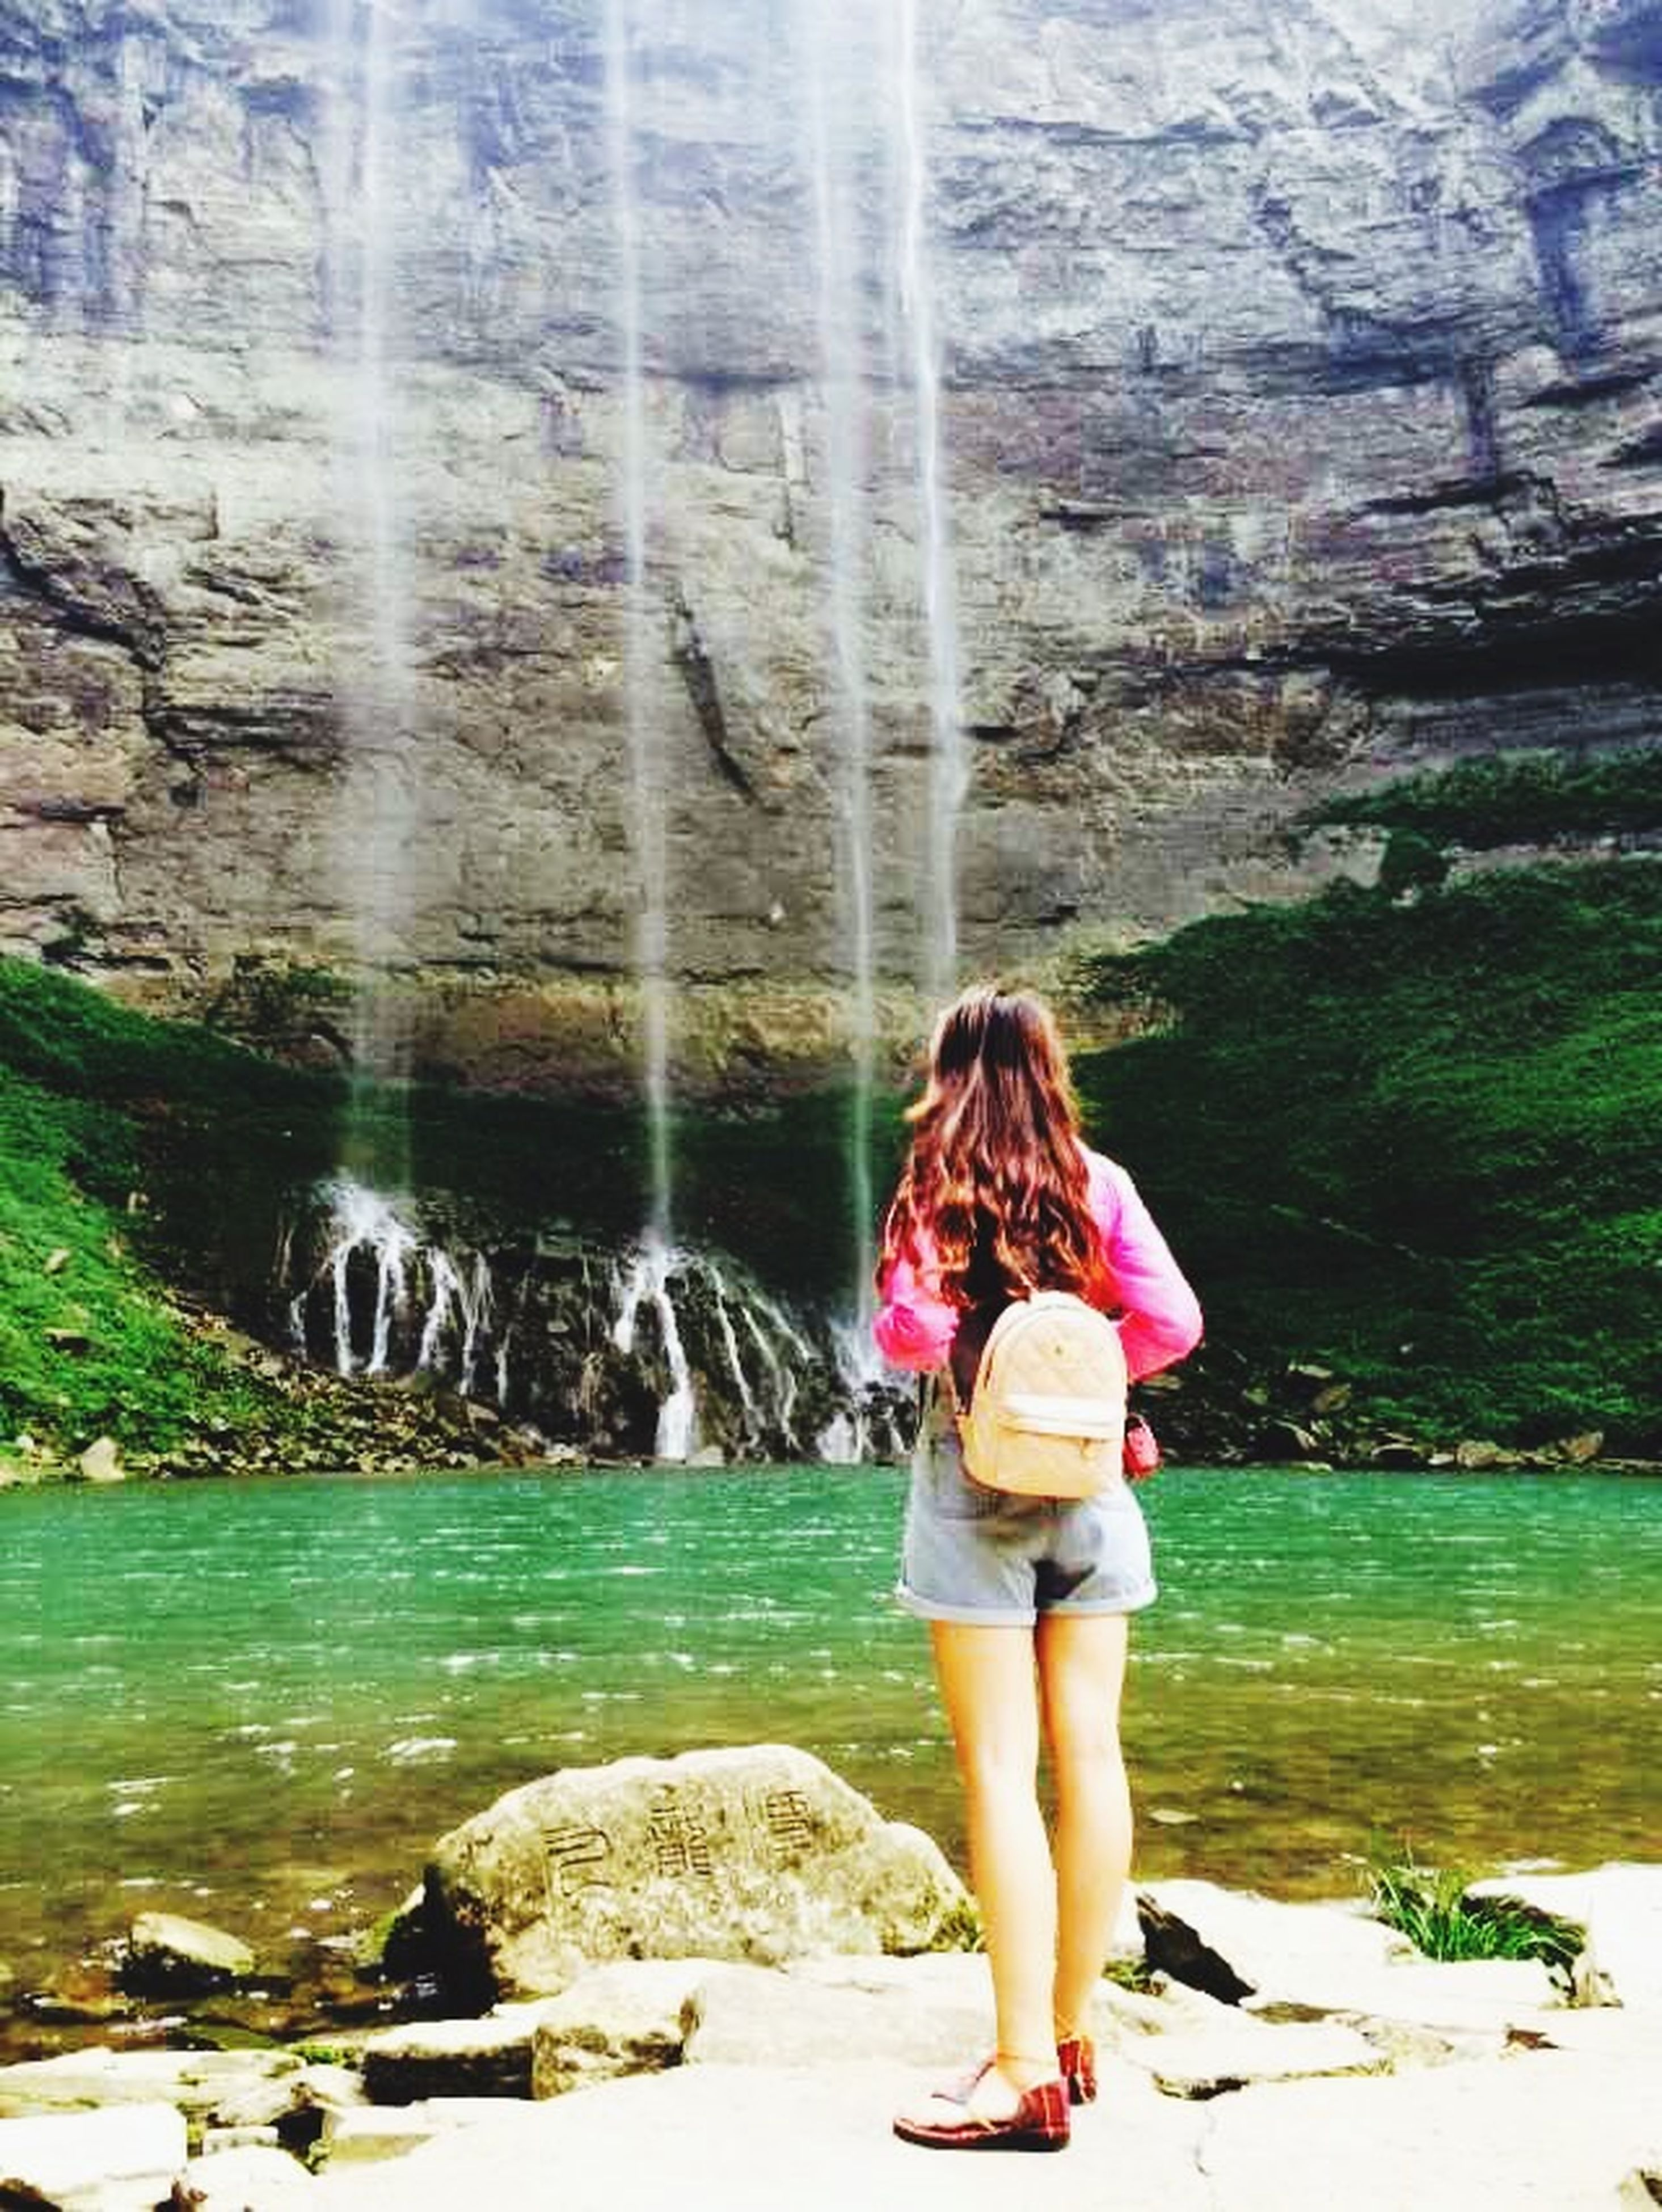 water, full length, lifestyles, rear view, leisure activity, casual clothing, standing, girls, person, nature, childhood, day, three quarter length, young women, rock - object, vacations, beauty in nature